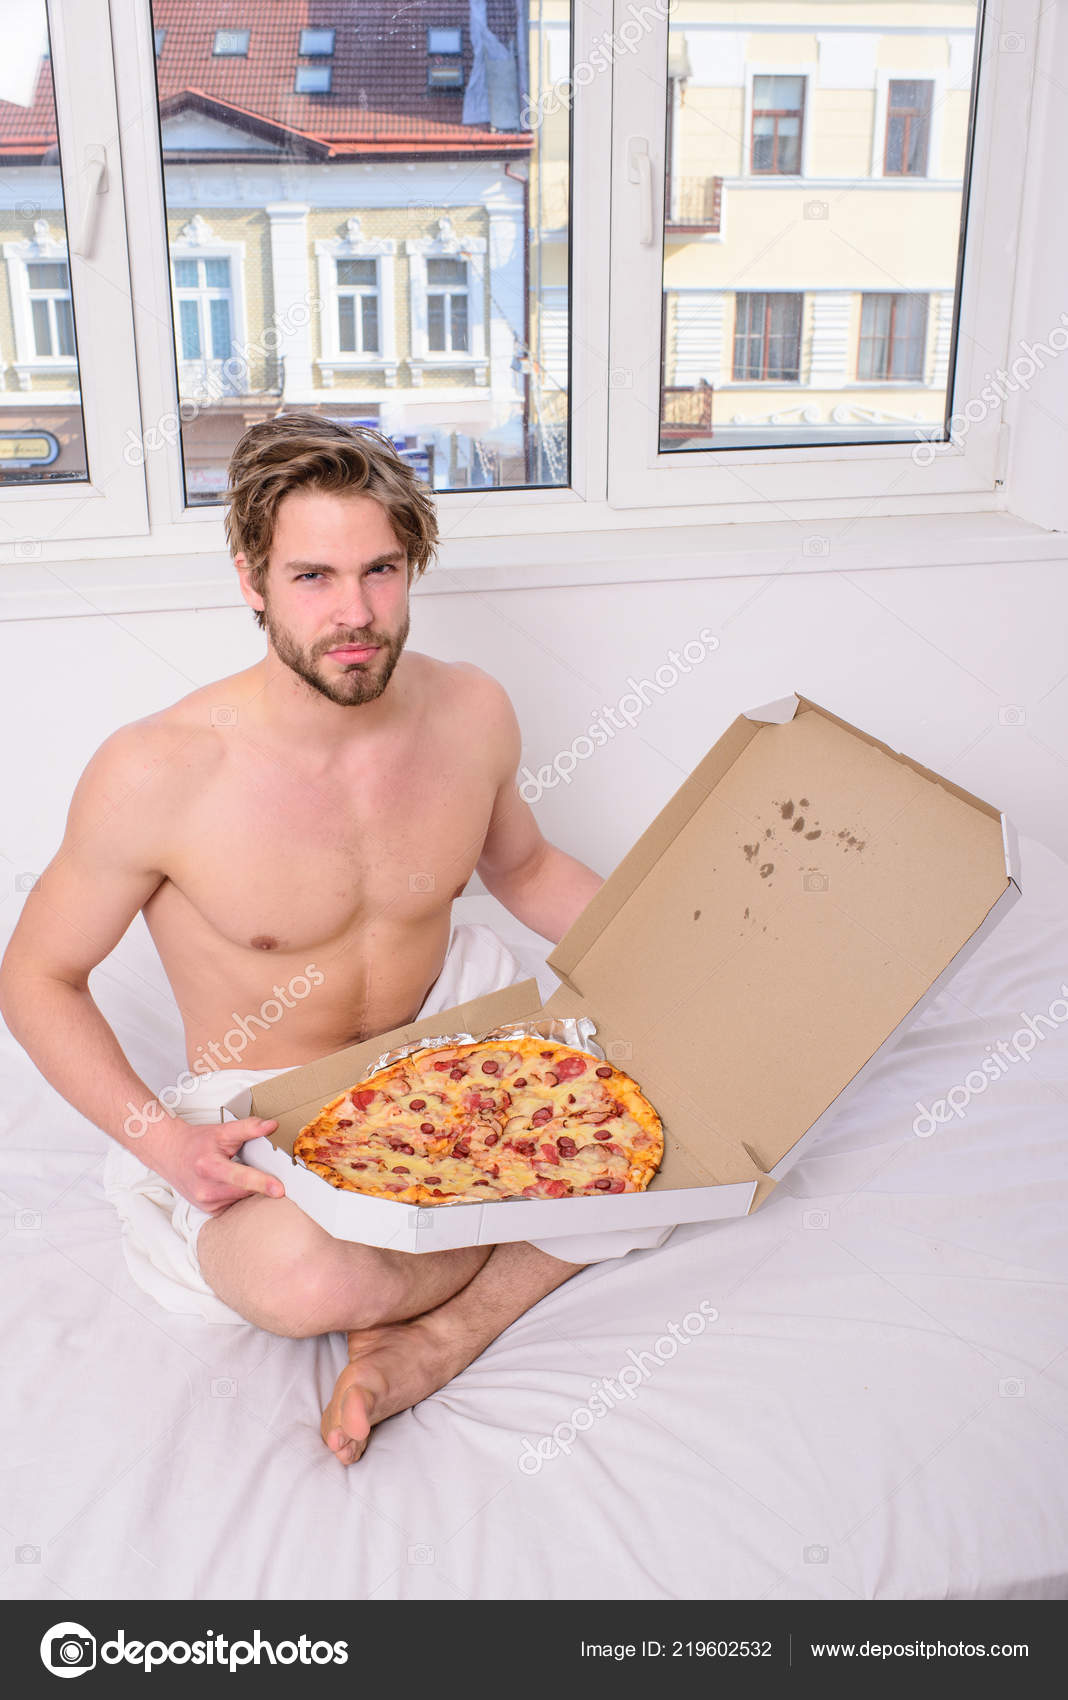 Guy Holds Pizza Box Sit Bed In Bedroom Or Hotel Room Food Delivery